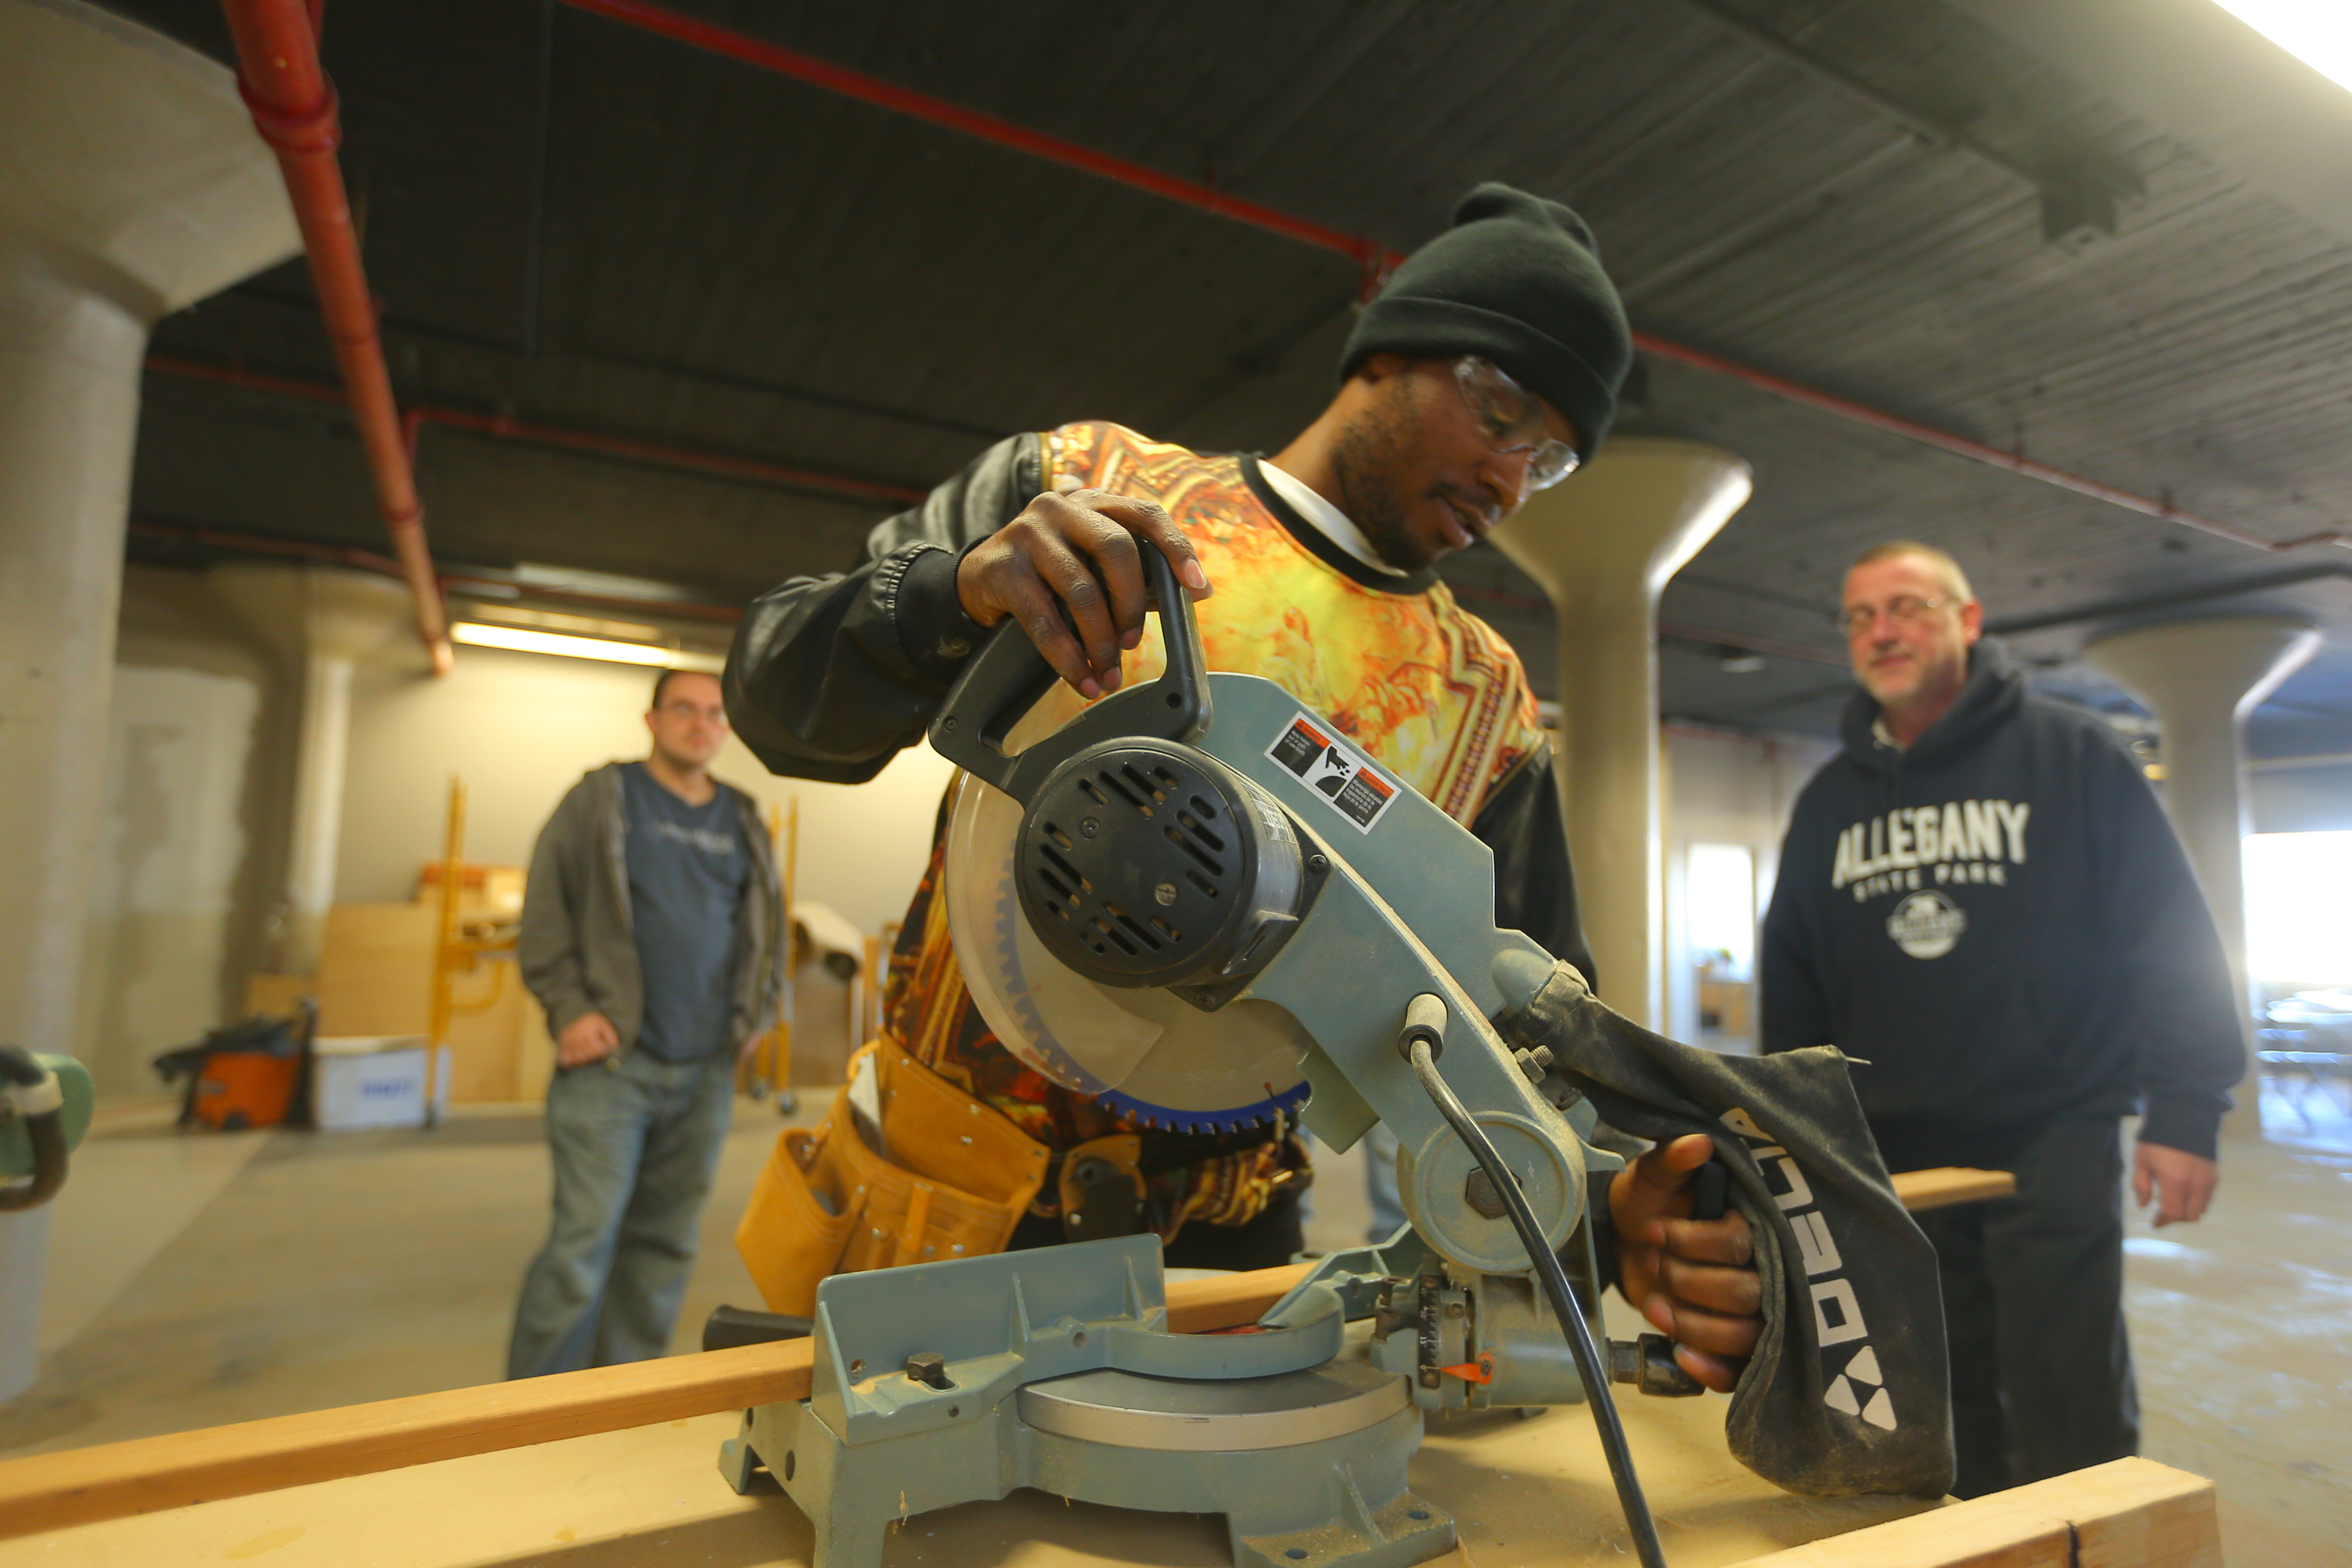 Spencer Williams , left, sets up a chop saw under the supervision of instructor Paul Crawford at the Isaiah 61 training program in Lockport on on  Wednesday,  Dec. 14, 2016. The program teaches building trades skills to unemployed adults in a classroom and practice center on the third floor of Harrison Place in Lockport, N.Y. Later, the students will help renovate abandoned houses purchased by  Isaiah 61, a faith-based group. (John Hickey/Buffalo News)